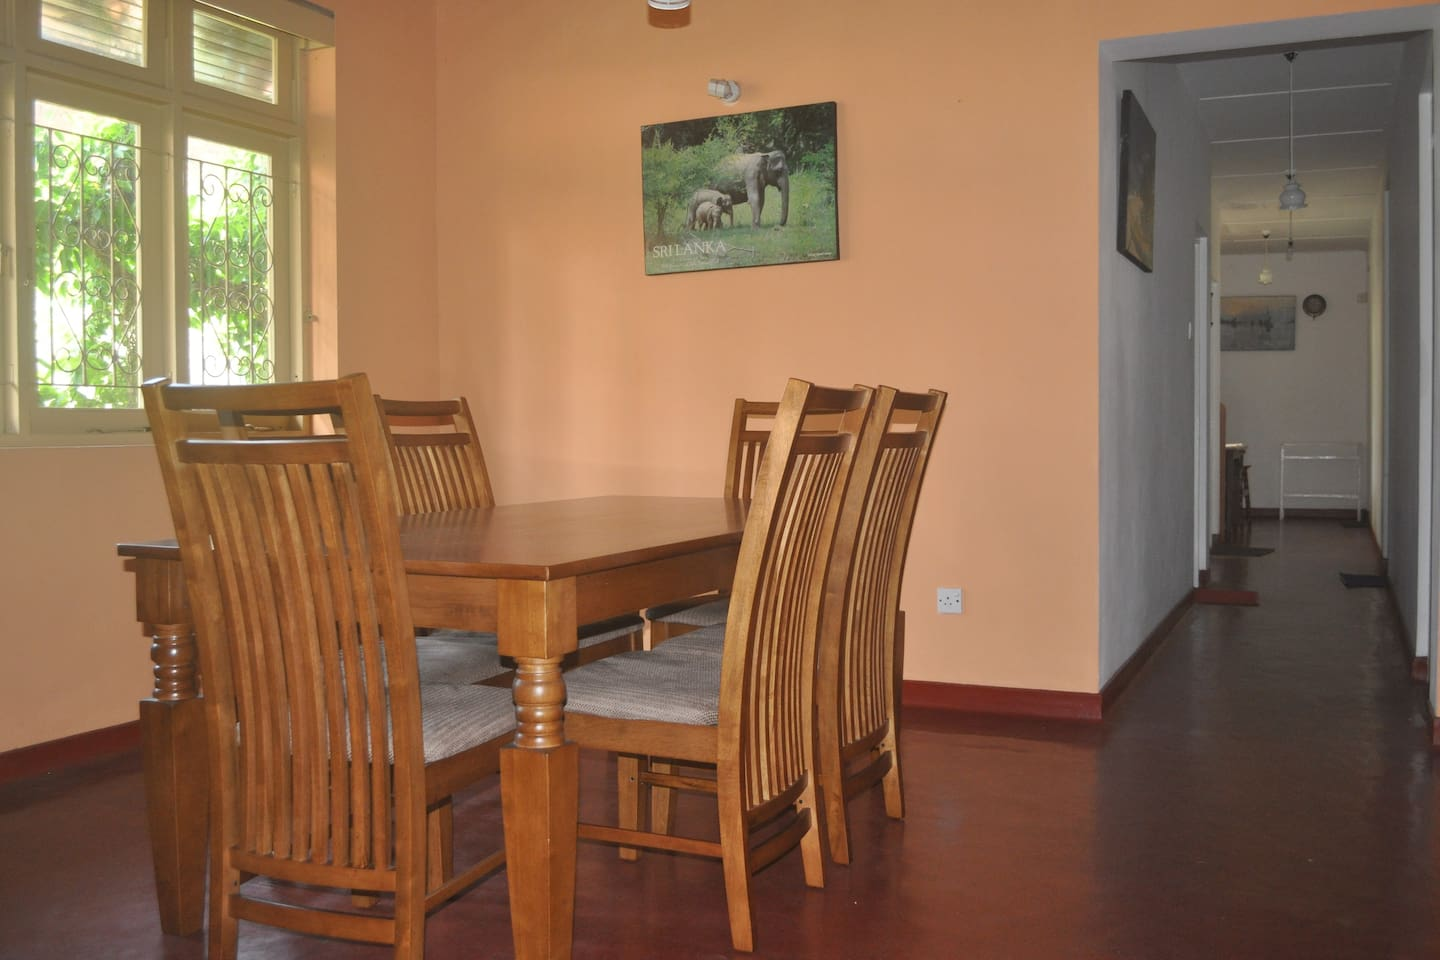 Dinning room and walkway to the bedrooms.